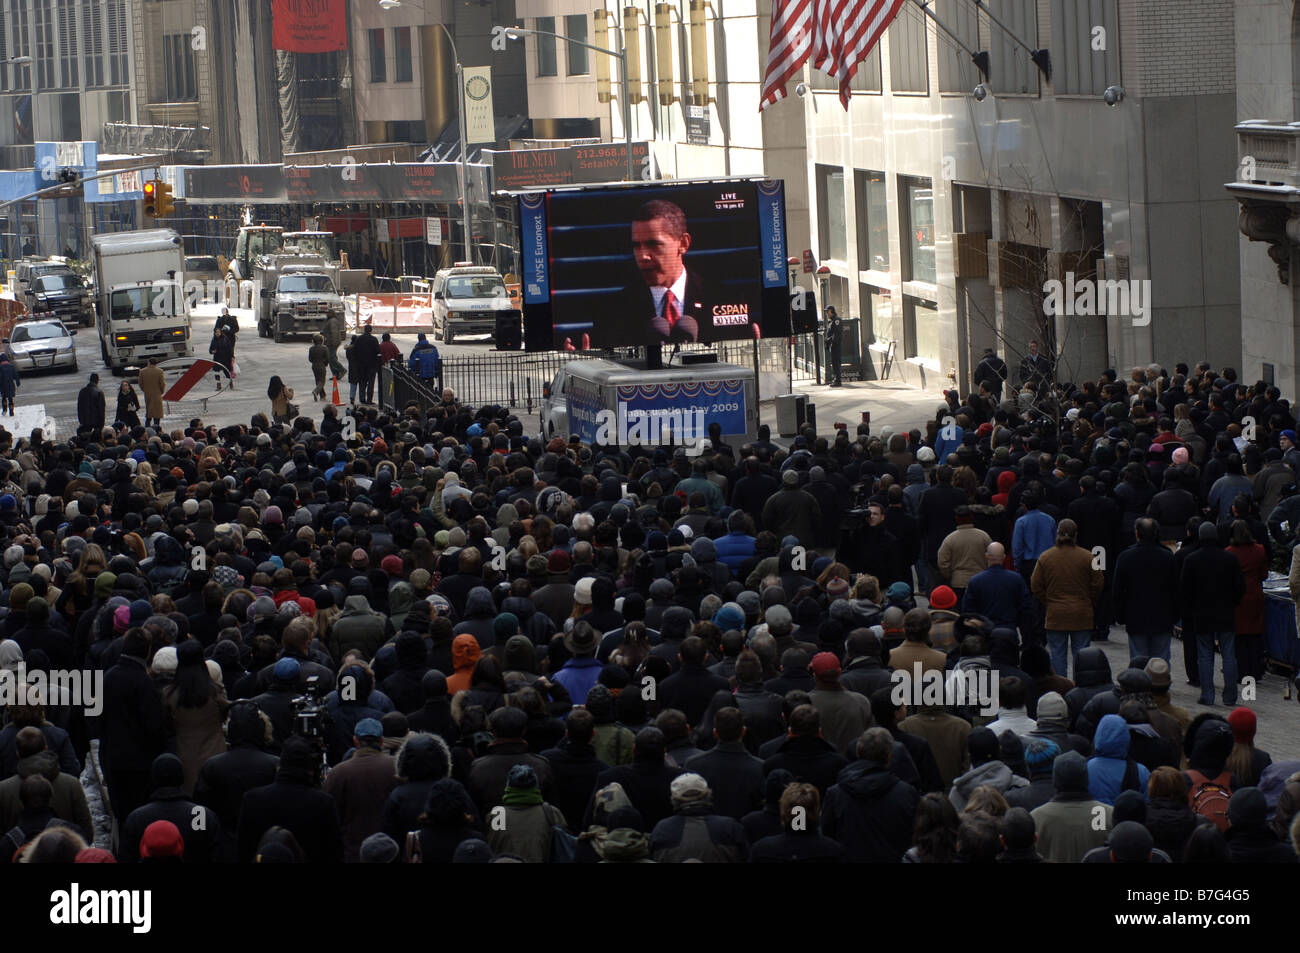 Spectators gather outside the New York Stock Exchange in New York to watch the inauguration of Barack Obama - Stock Image